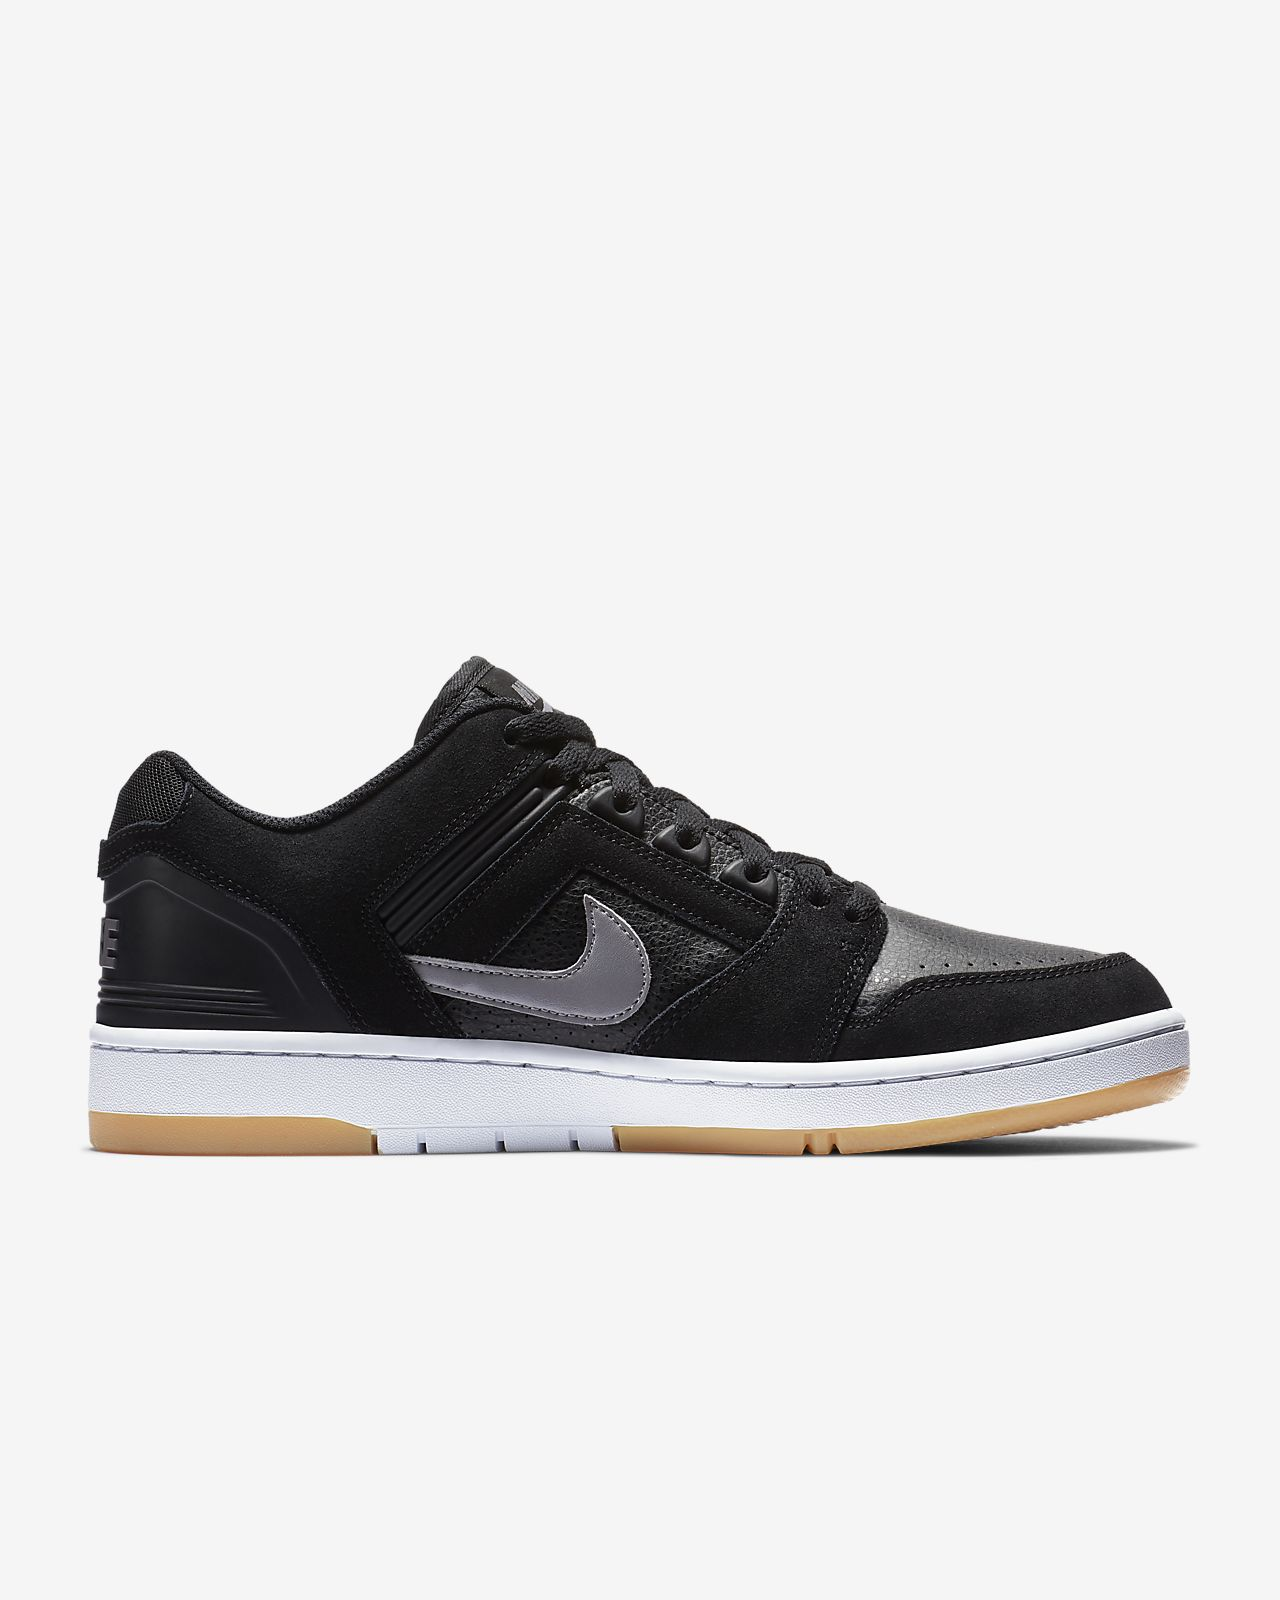 dca94f2da7f1c Nike SB Air Force II Low Men s Skateboarding Shoe. Nike.com